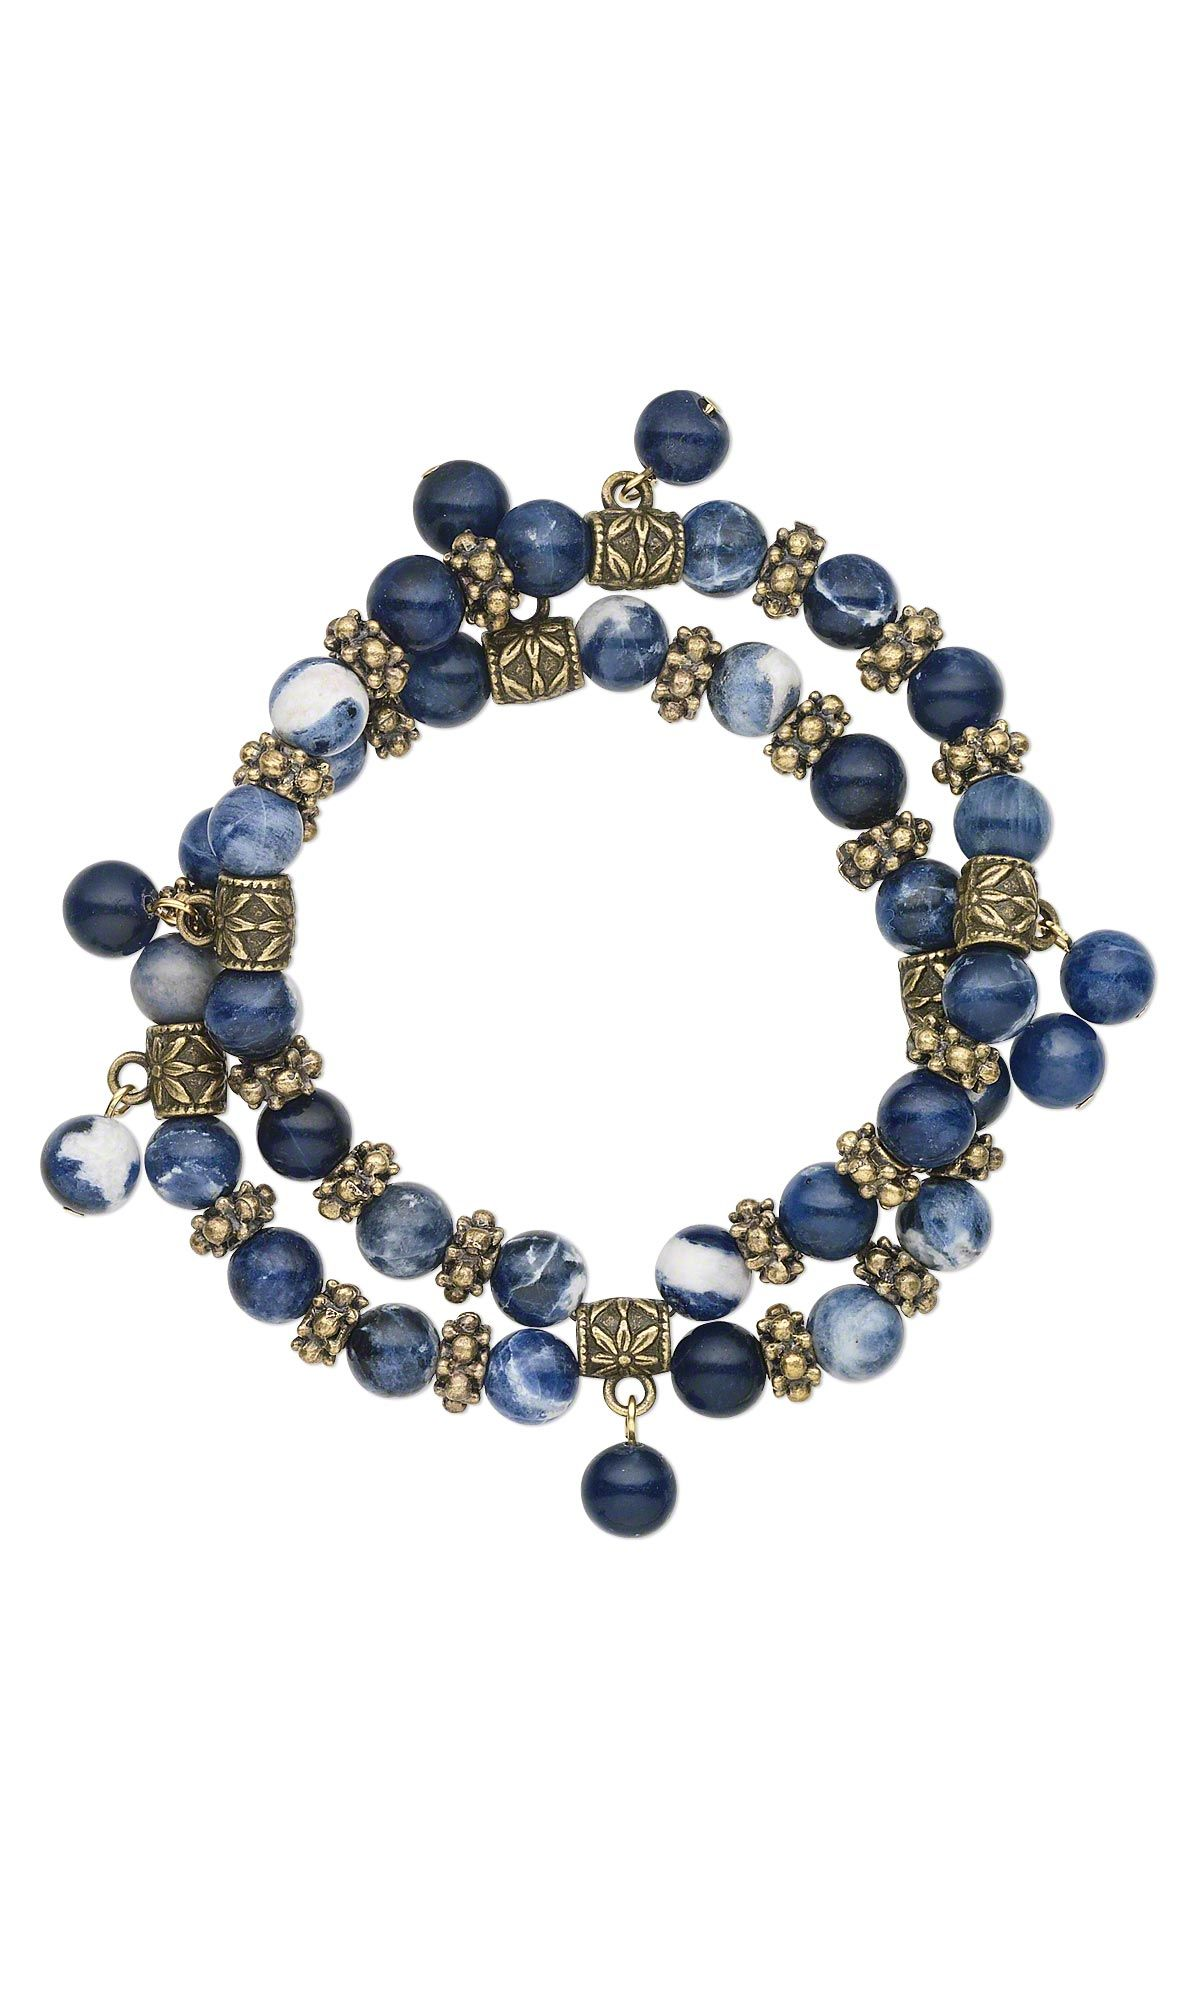 Jewelry Design   Double Strand Bracelet With Sodalite Gemstone Beads And  Antiqued Brass Plated